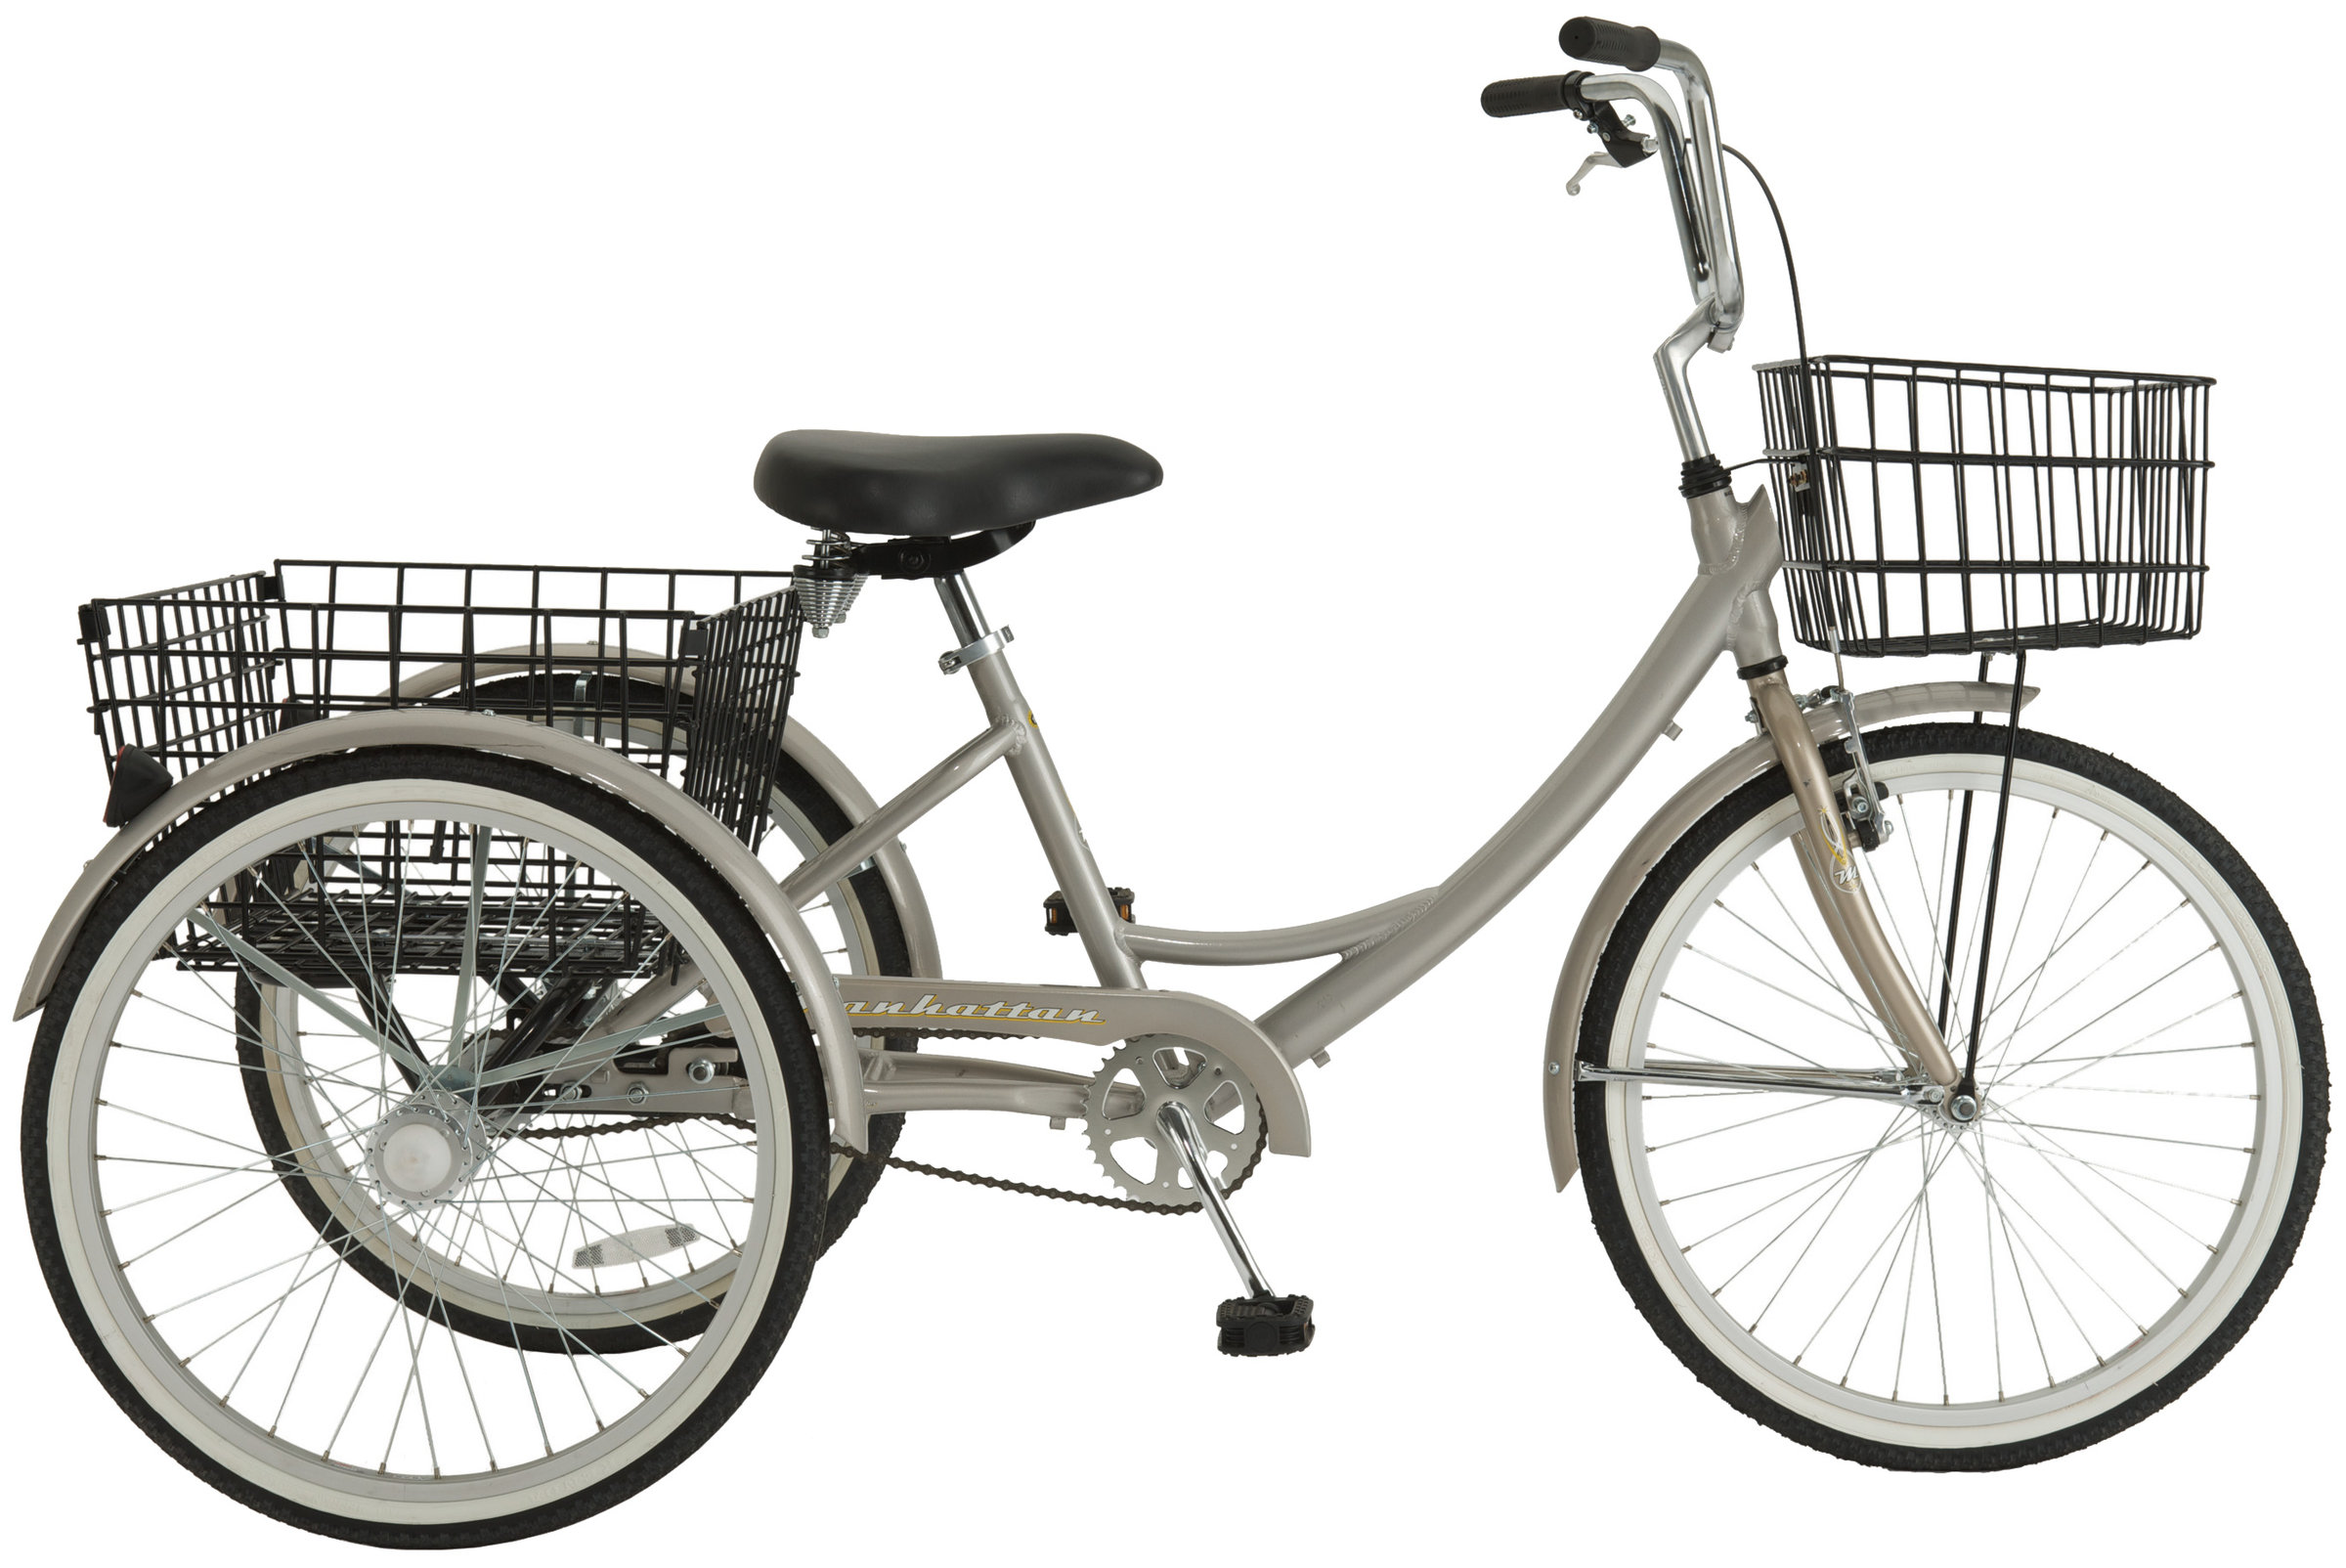 Selecting a Adult Tricycle